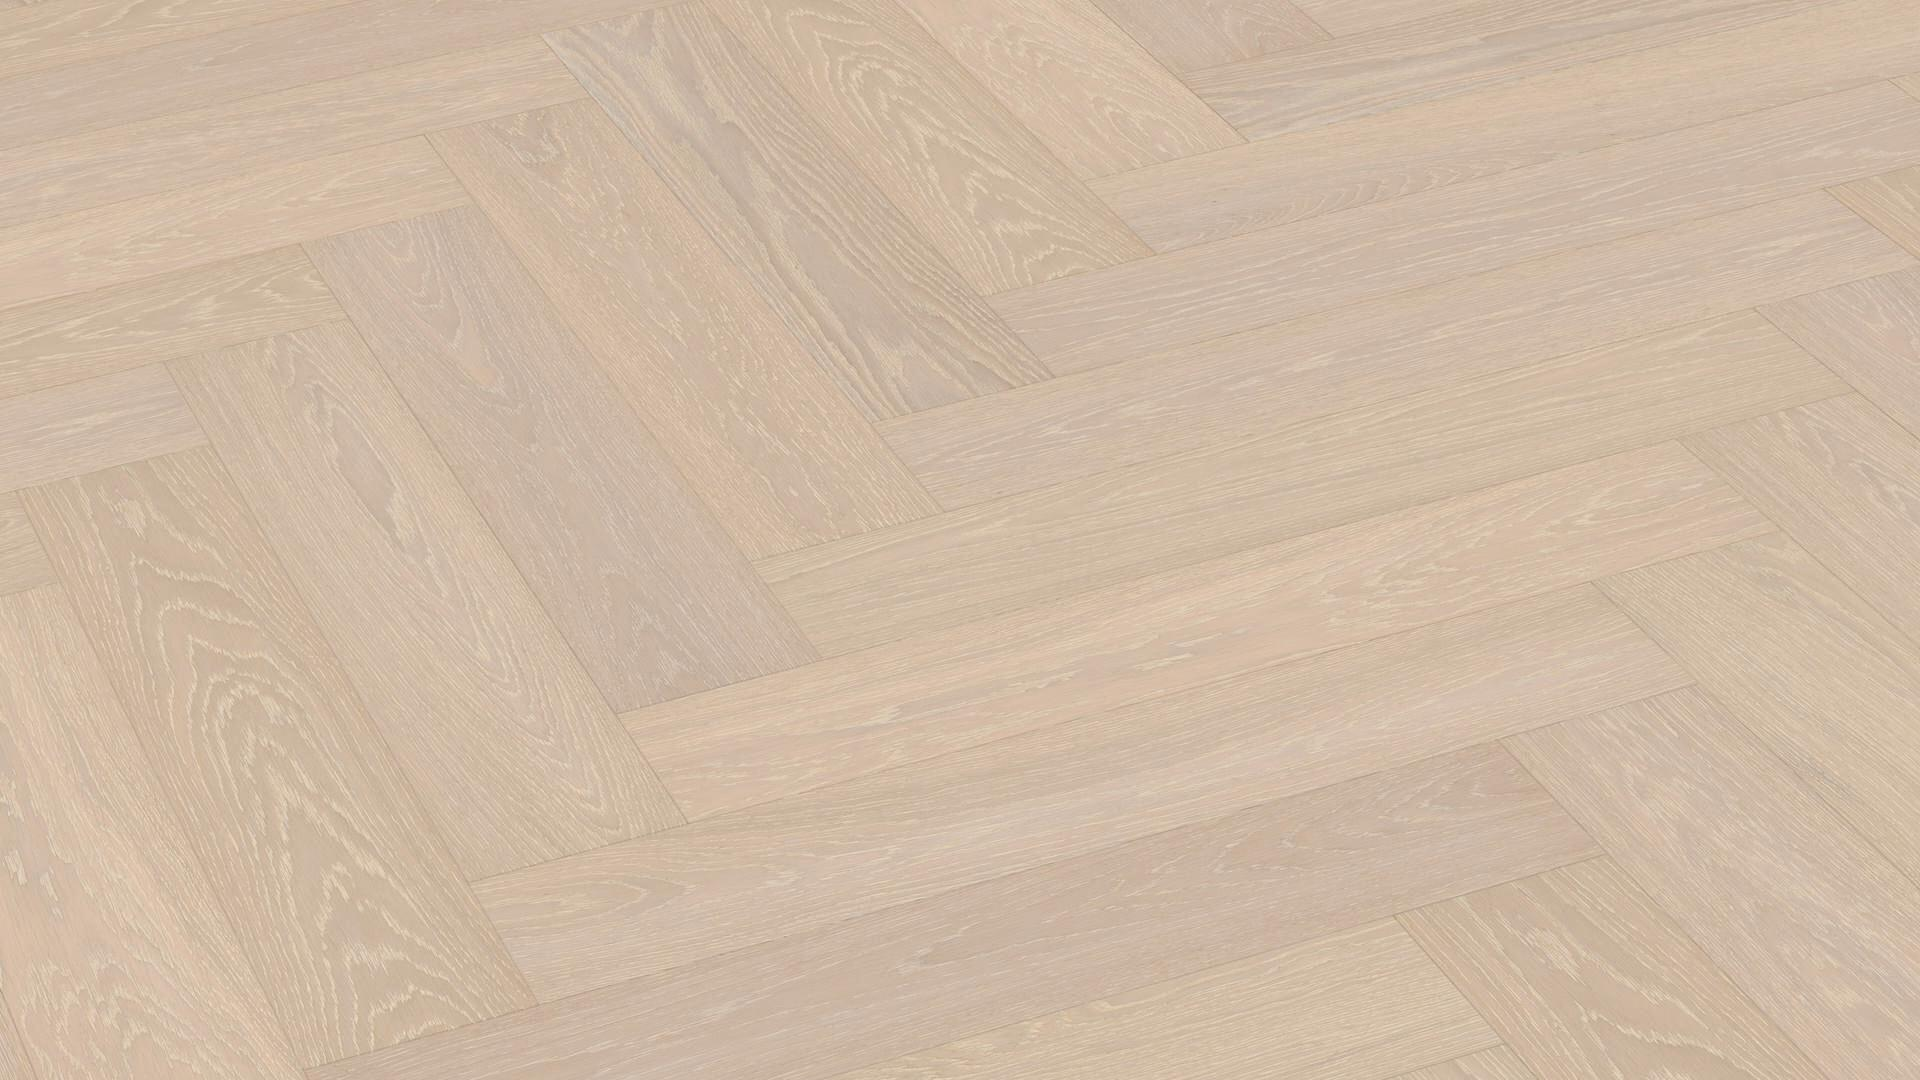 Parquet flooring MeisterParquet. longlife PS 500 Off-white limed oak harmonious 8815